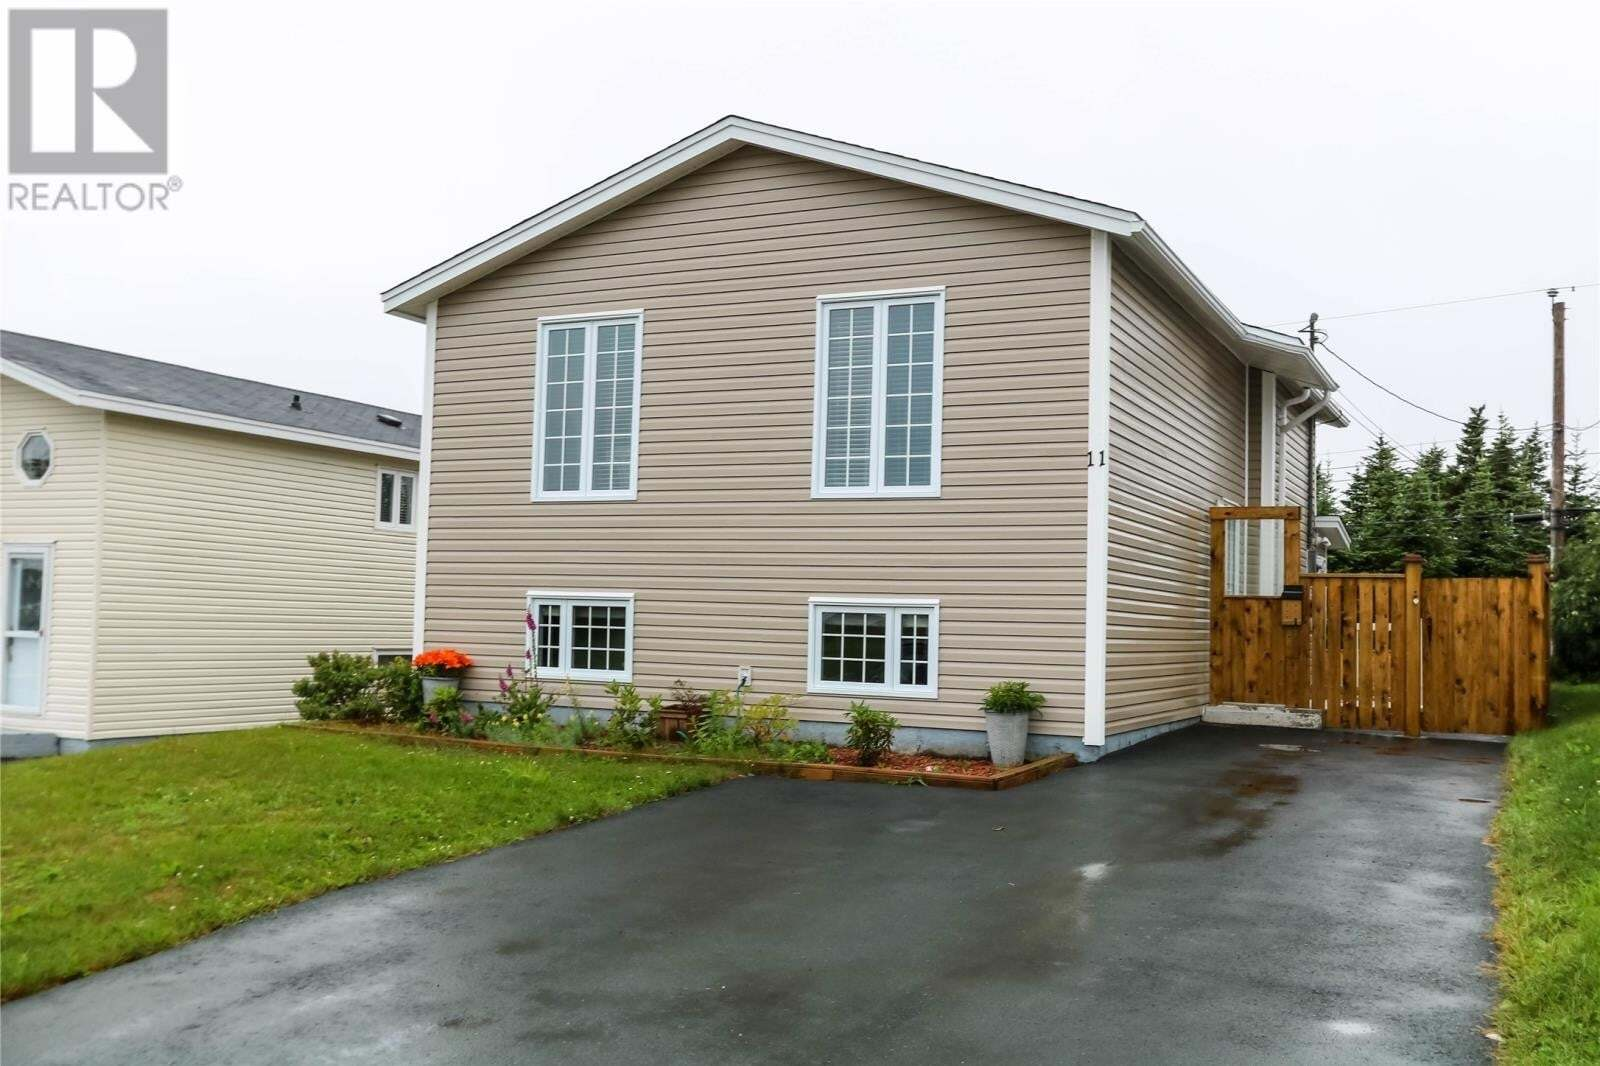 House for sale at 11 Elmcliffe St Mount Pearl Newfoundland - MLS: 1218410